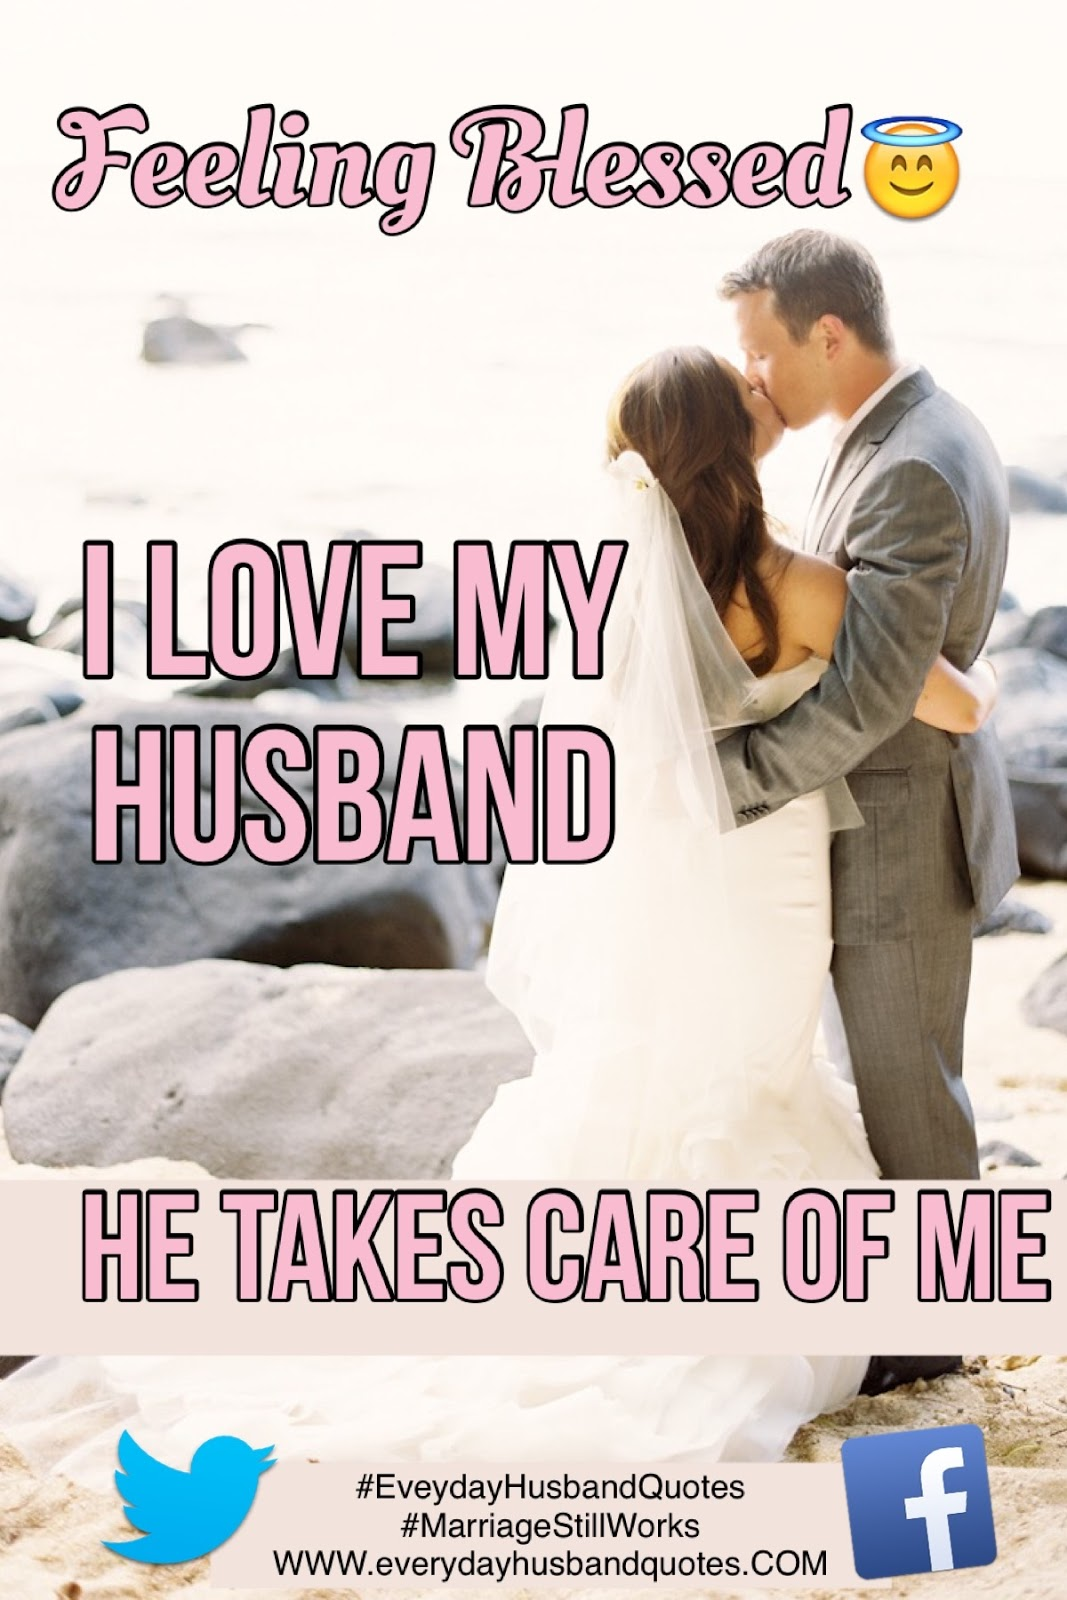 everyday husband quotes com yes marriage still works feeling